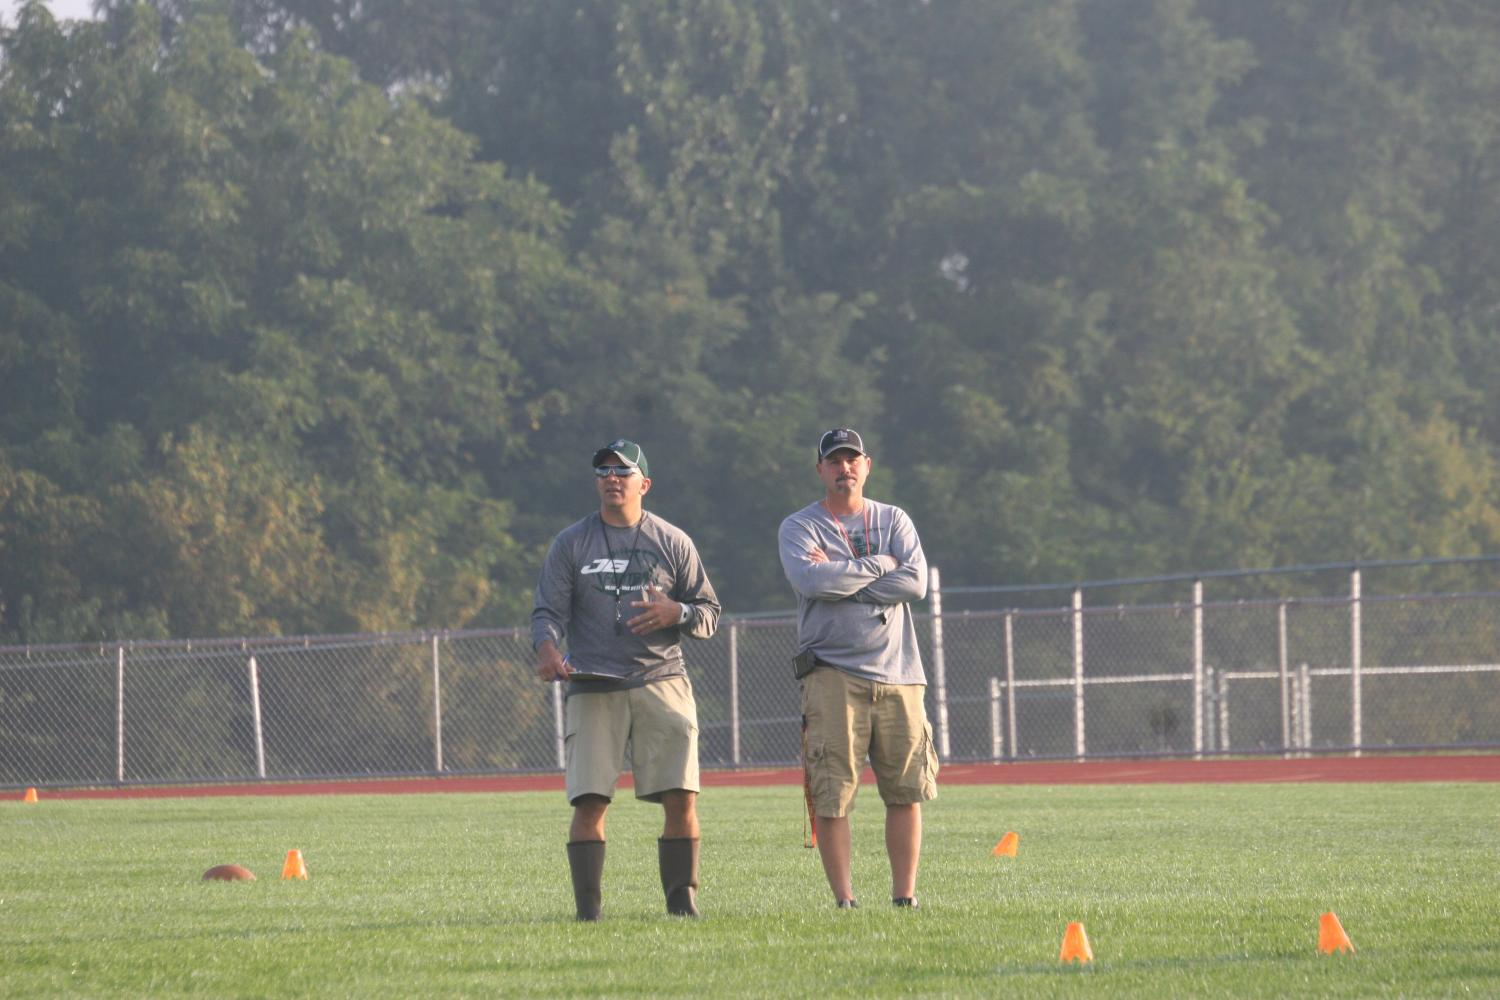 Pictured above, Coach Stoner (left) and Coach Ellis (right) stand and observe a Saturday morning practice of flag football.